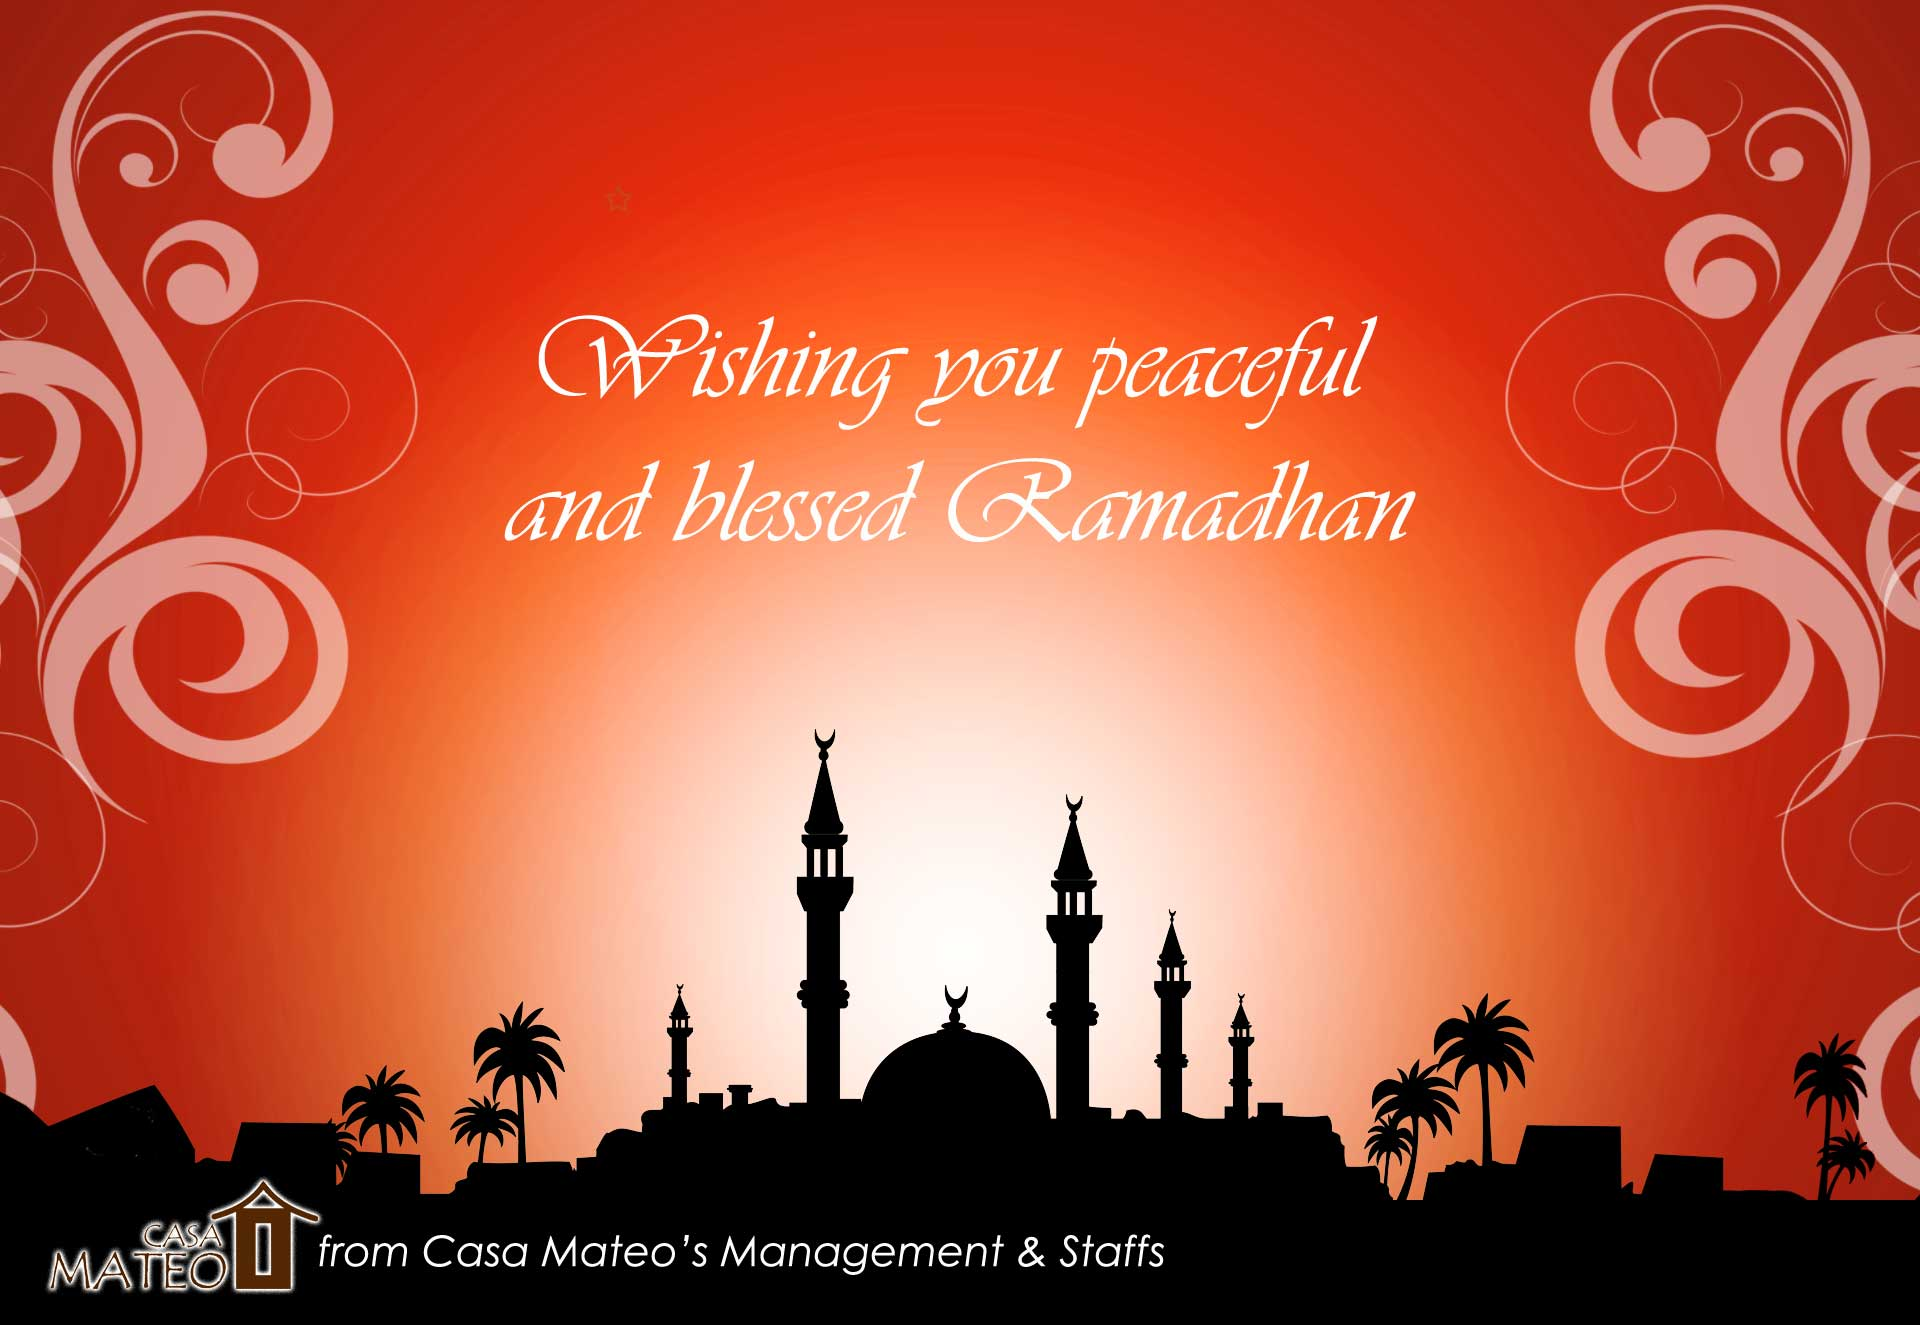 Ramadhan month 2013 villacasamateo wishes for the holy month of ramadhan a fasting month to be prepare for the kristyandbryce Images